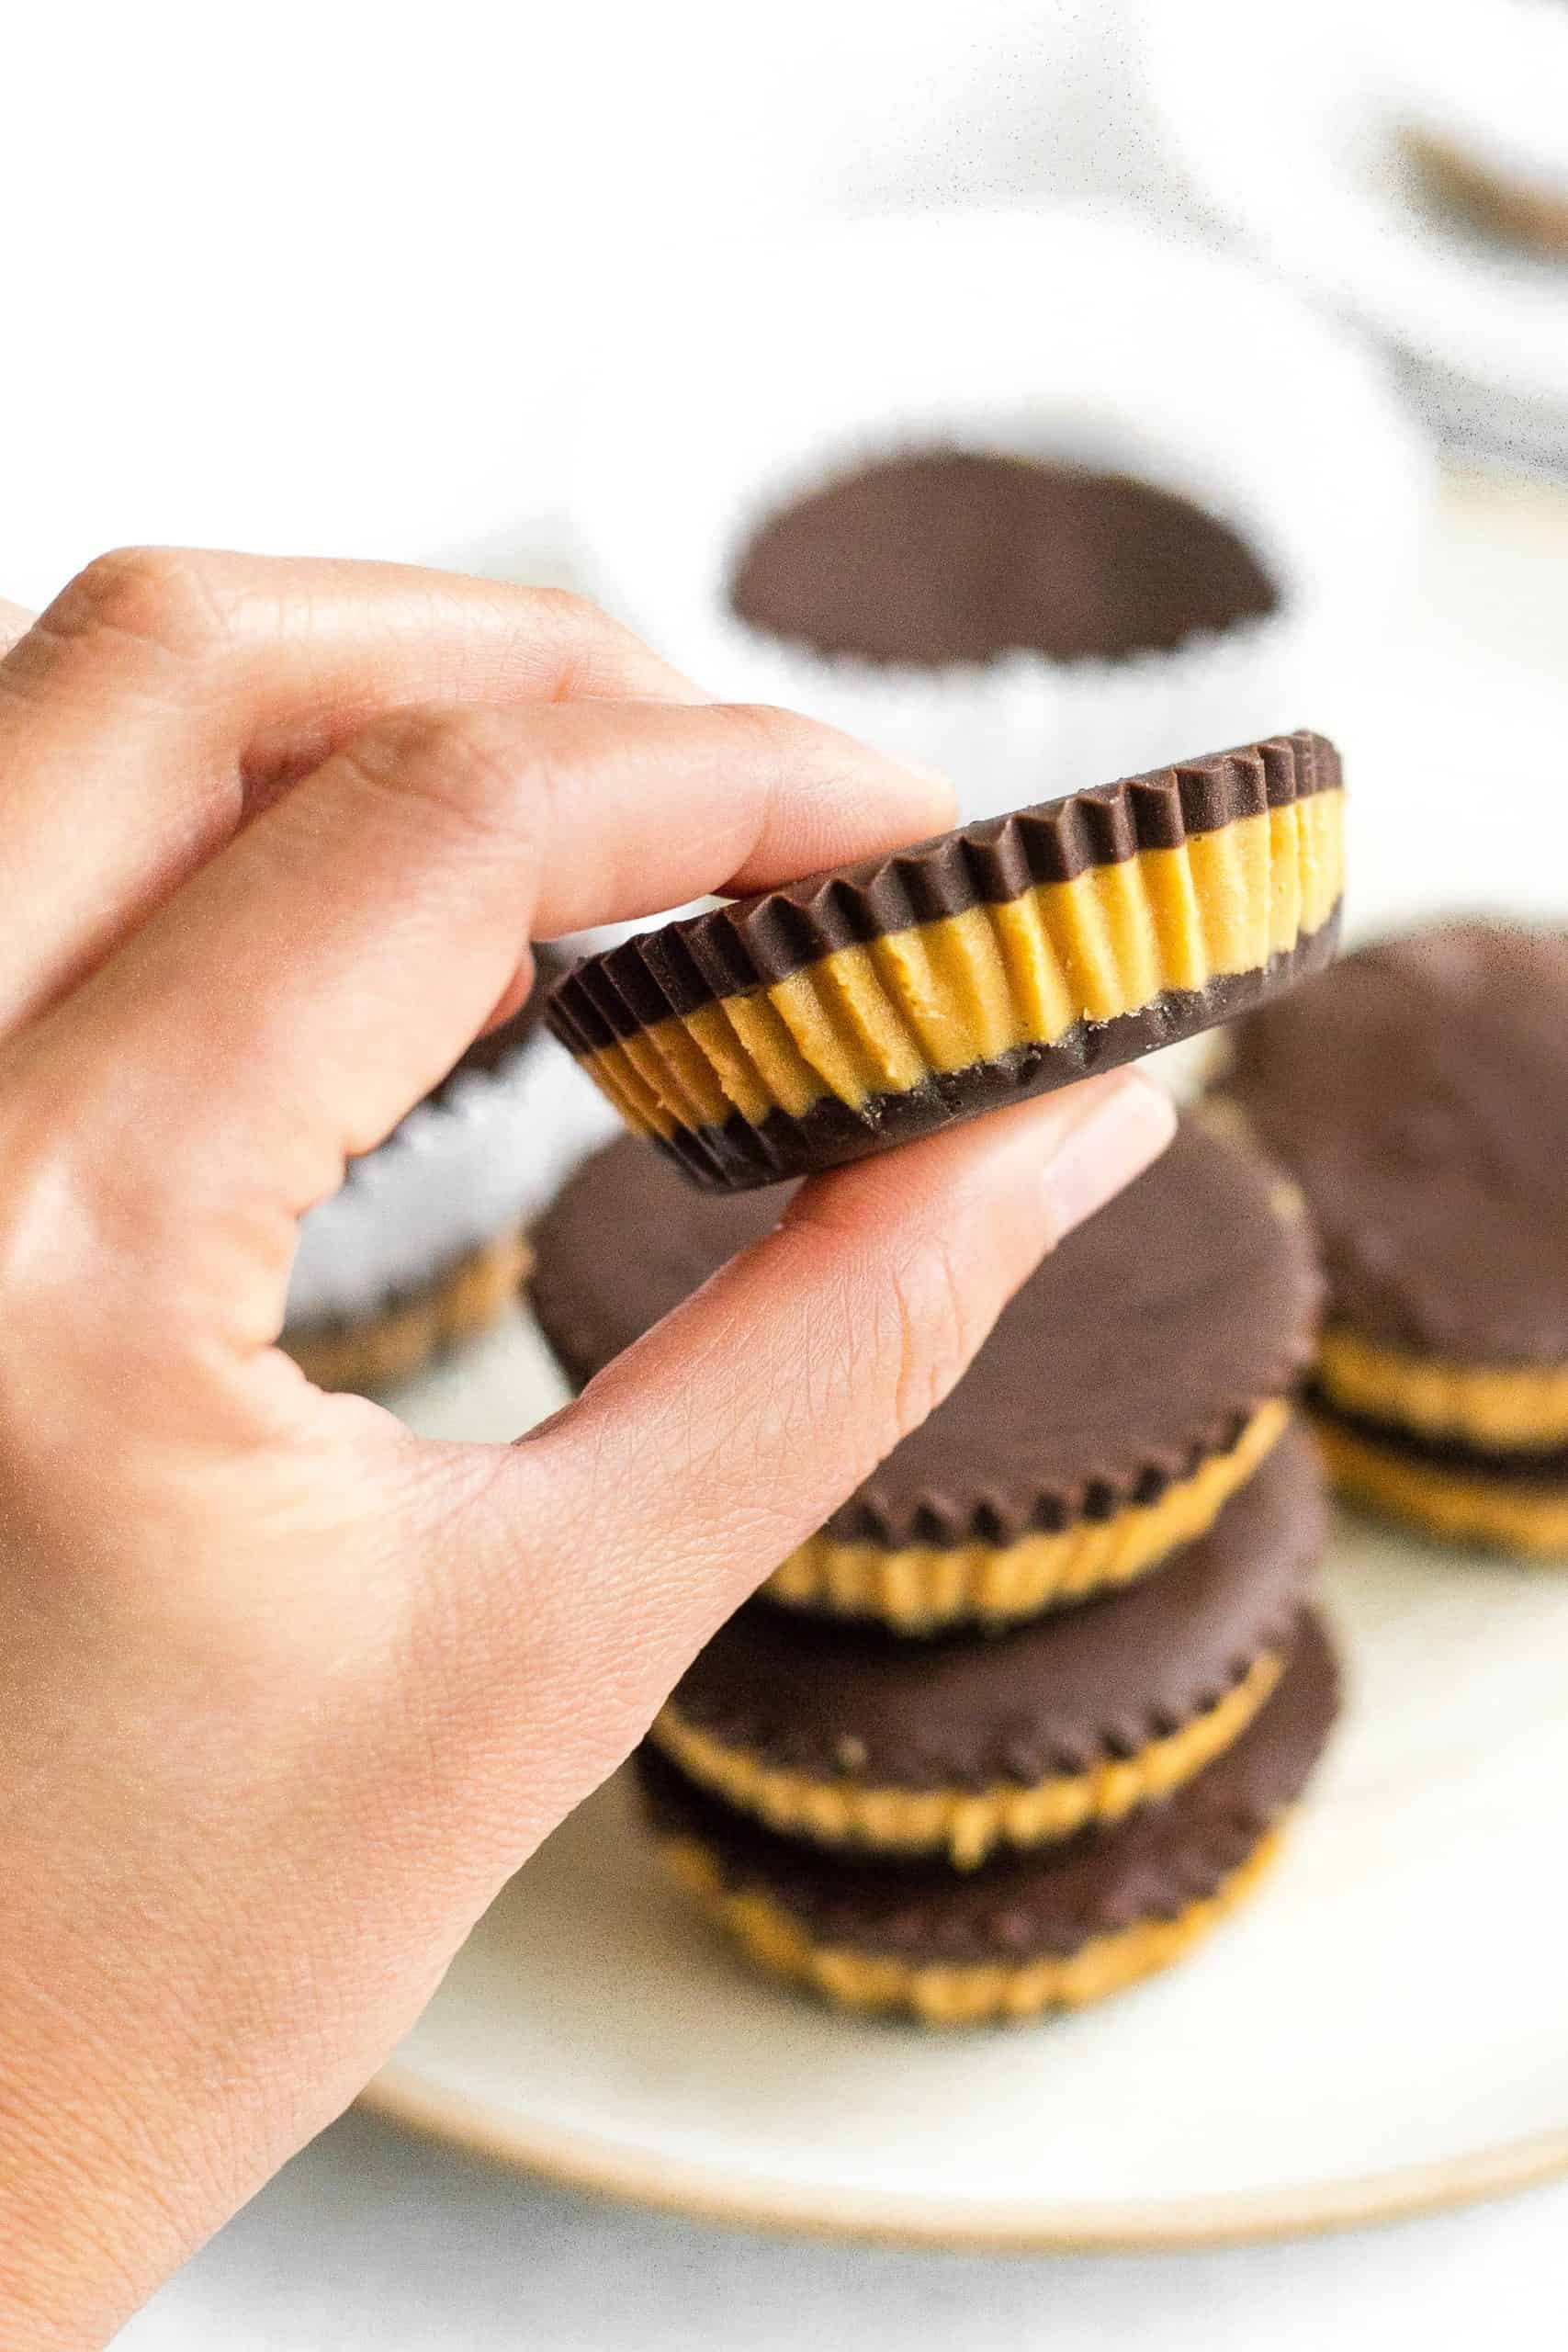 Hand holding a homemade peanut butter cup.